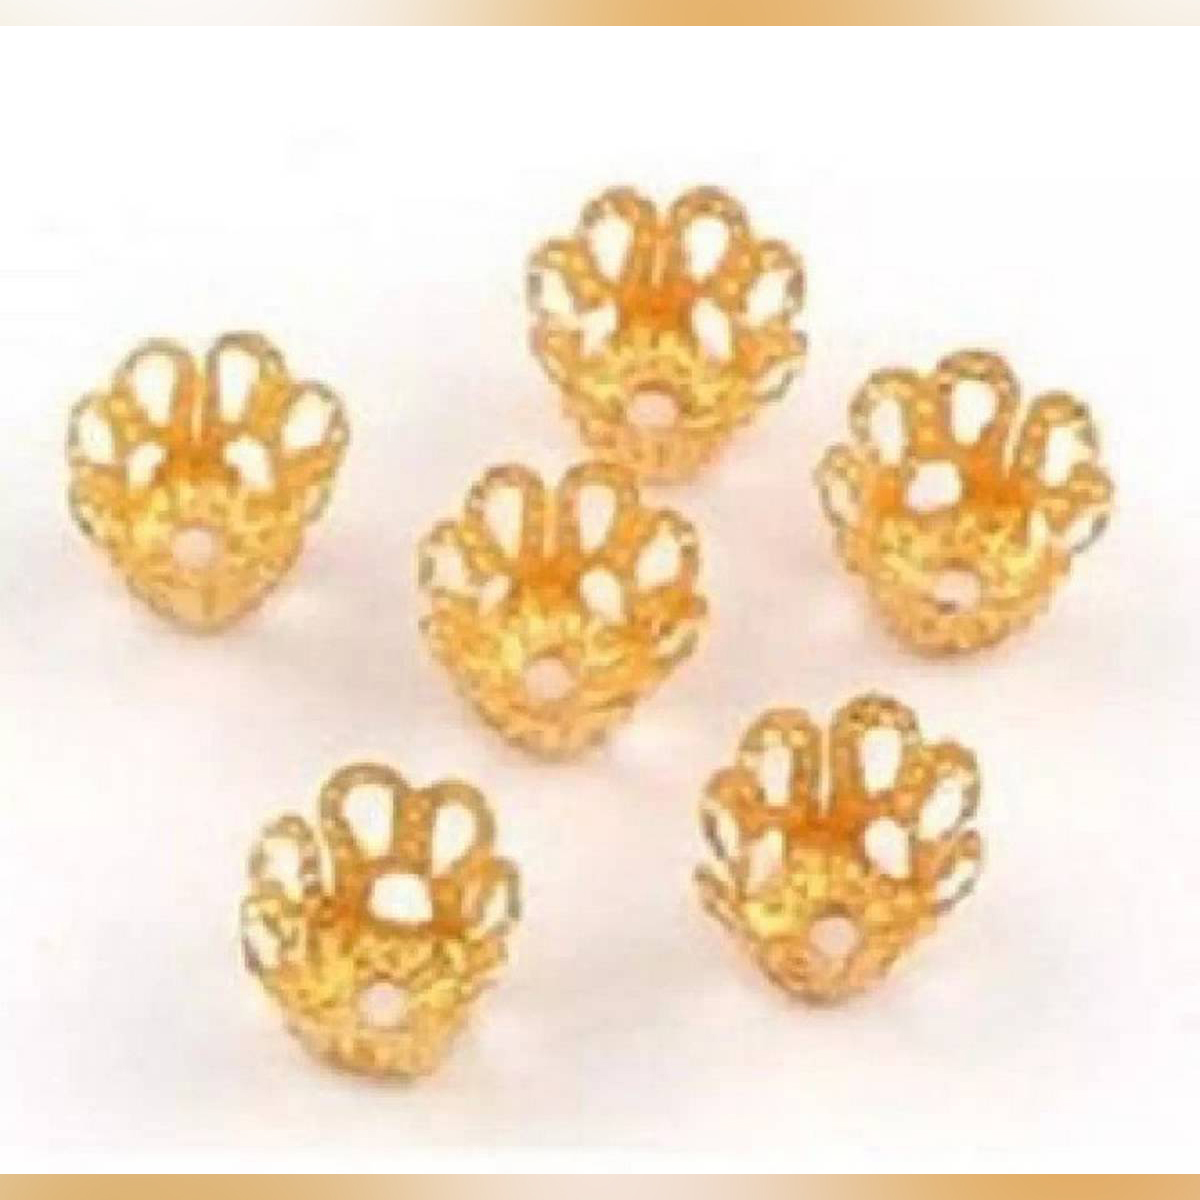 20Pieces 6mm  Filigree Metal Cup Hollow Flower End Caps Pendant DIY Charms Connectors Jewelry Findings